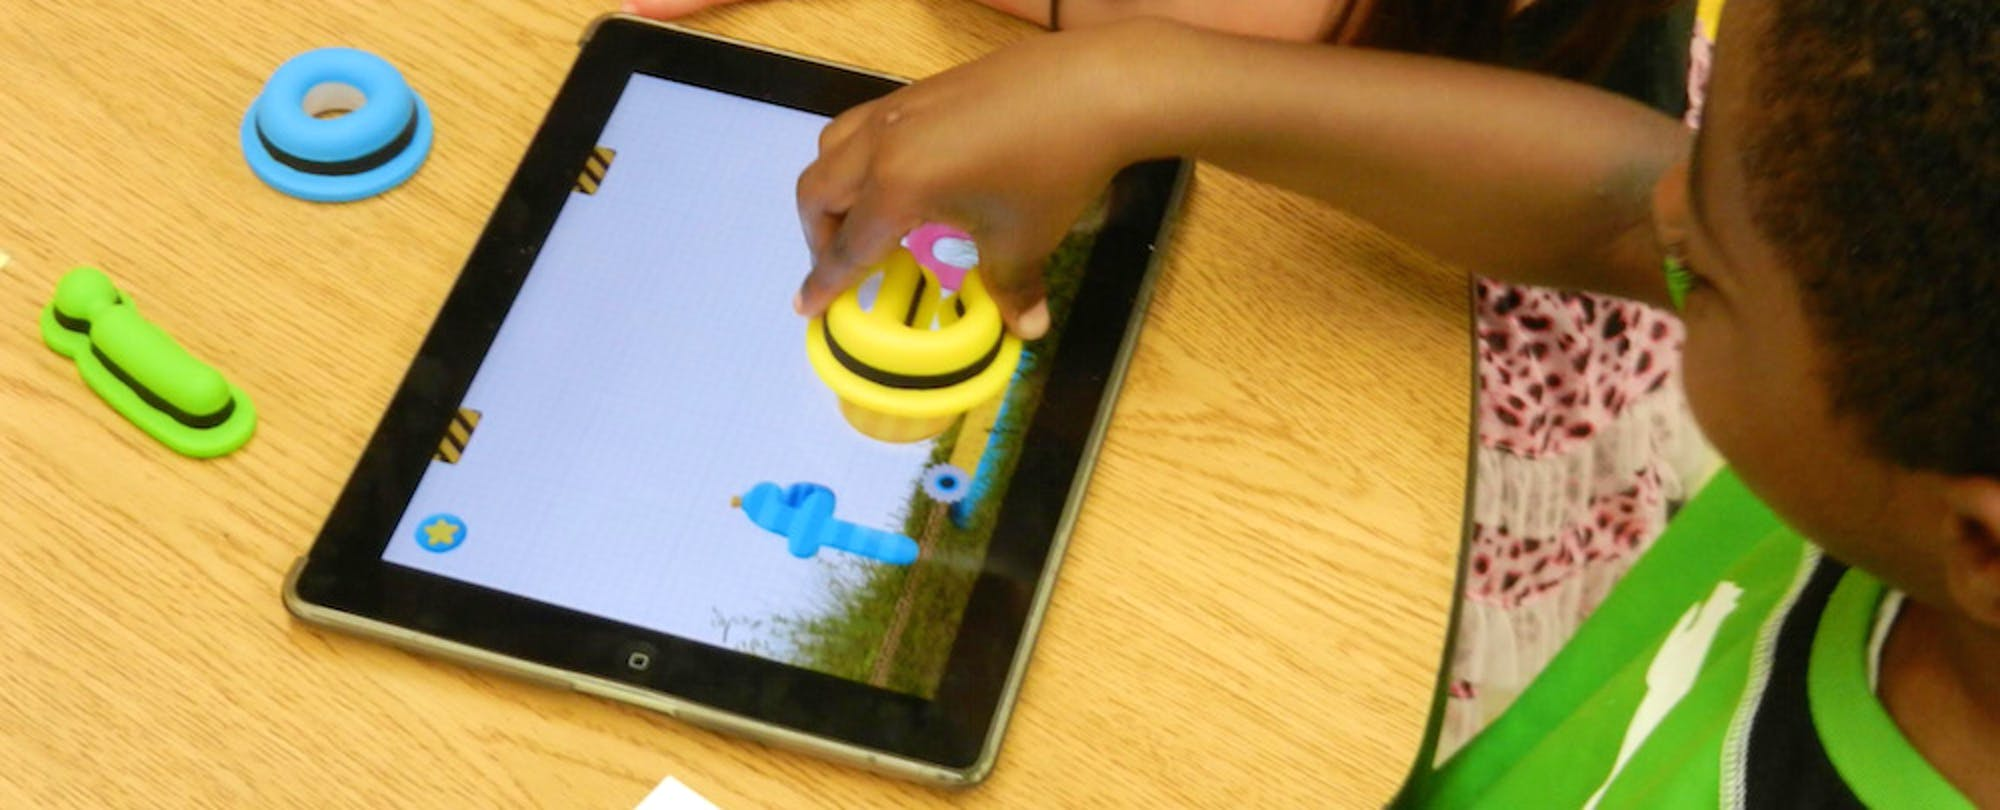 New Approaches Add a Tactile Dimension to Digital Learning